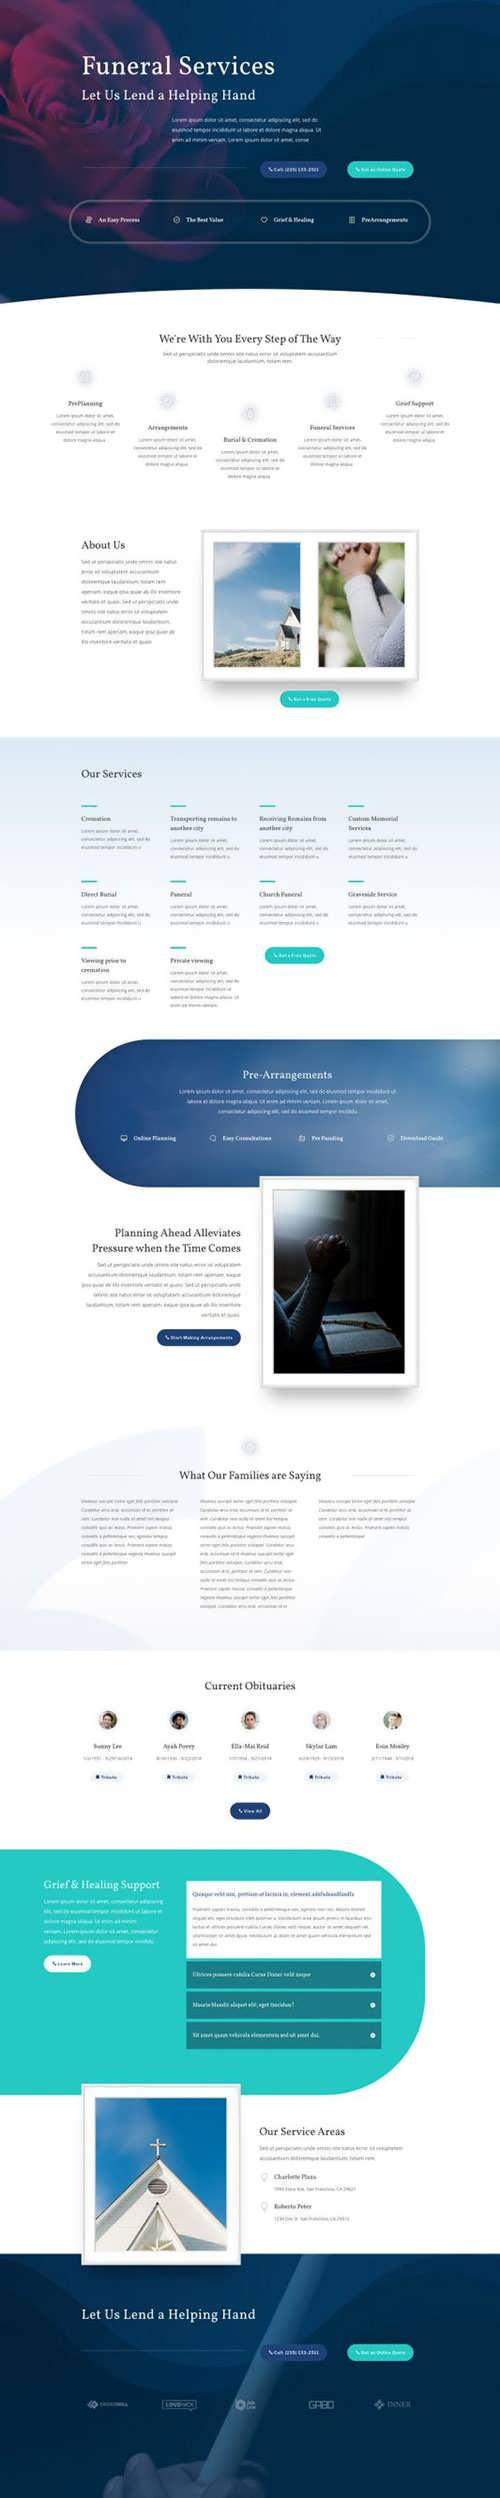 funeral home landing page